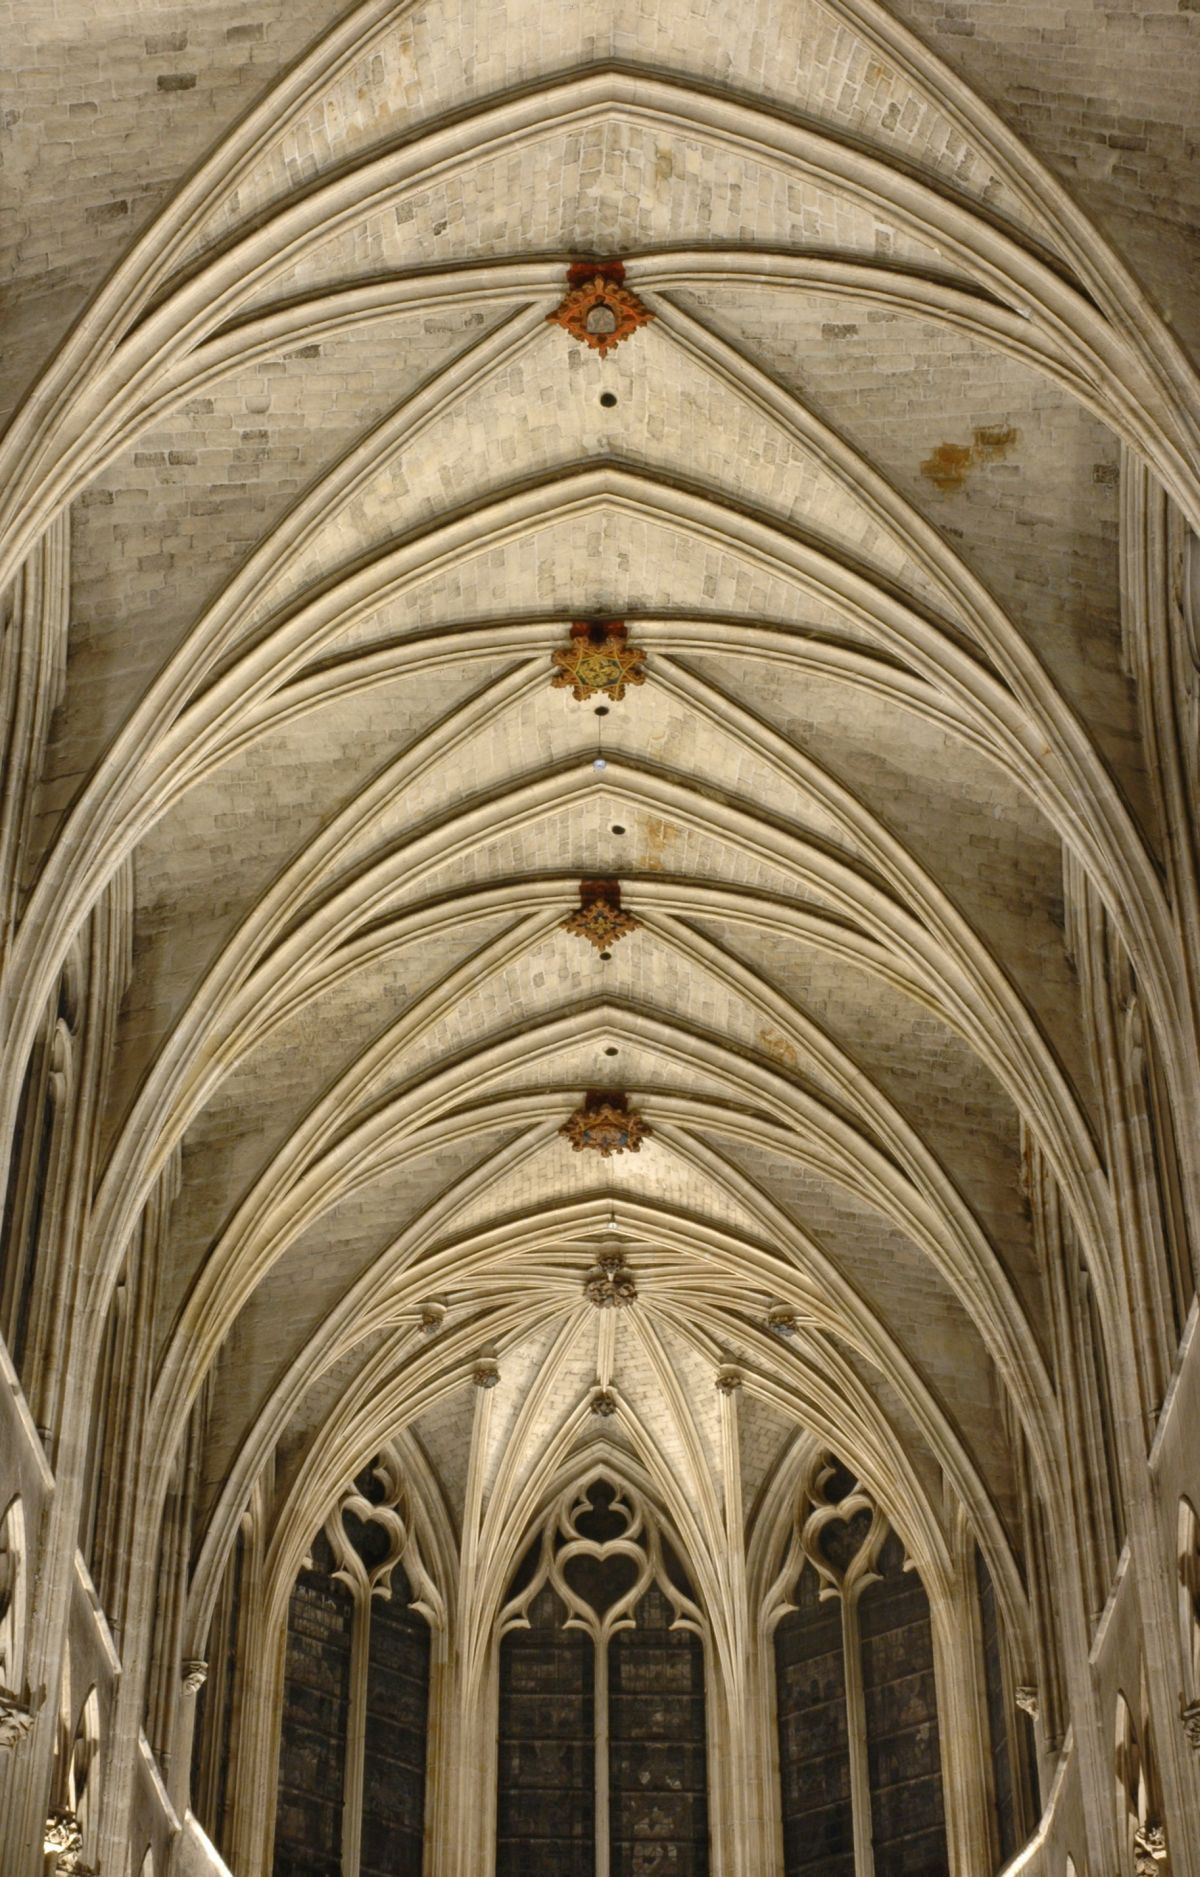 Futuristic Architecture Discover Vaulted Ceilings 101 History Pros Cons And Inspirational Examples In 2020 Ribbed Vault Gothic Architecture Futuristic Architecture